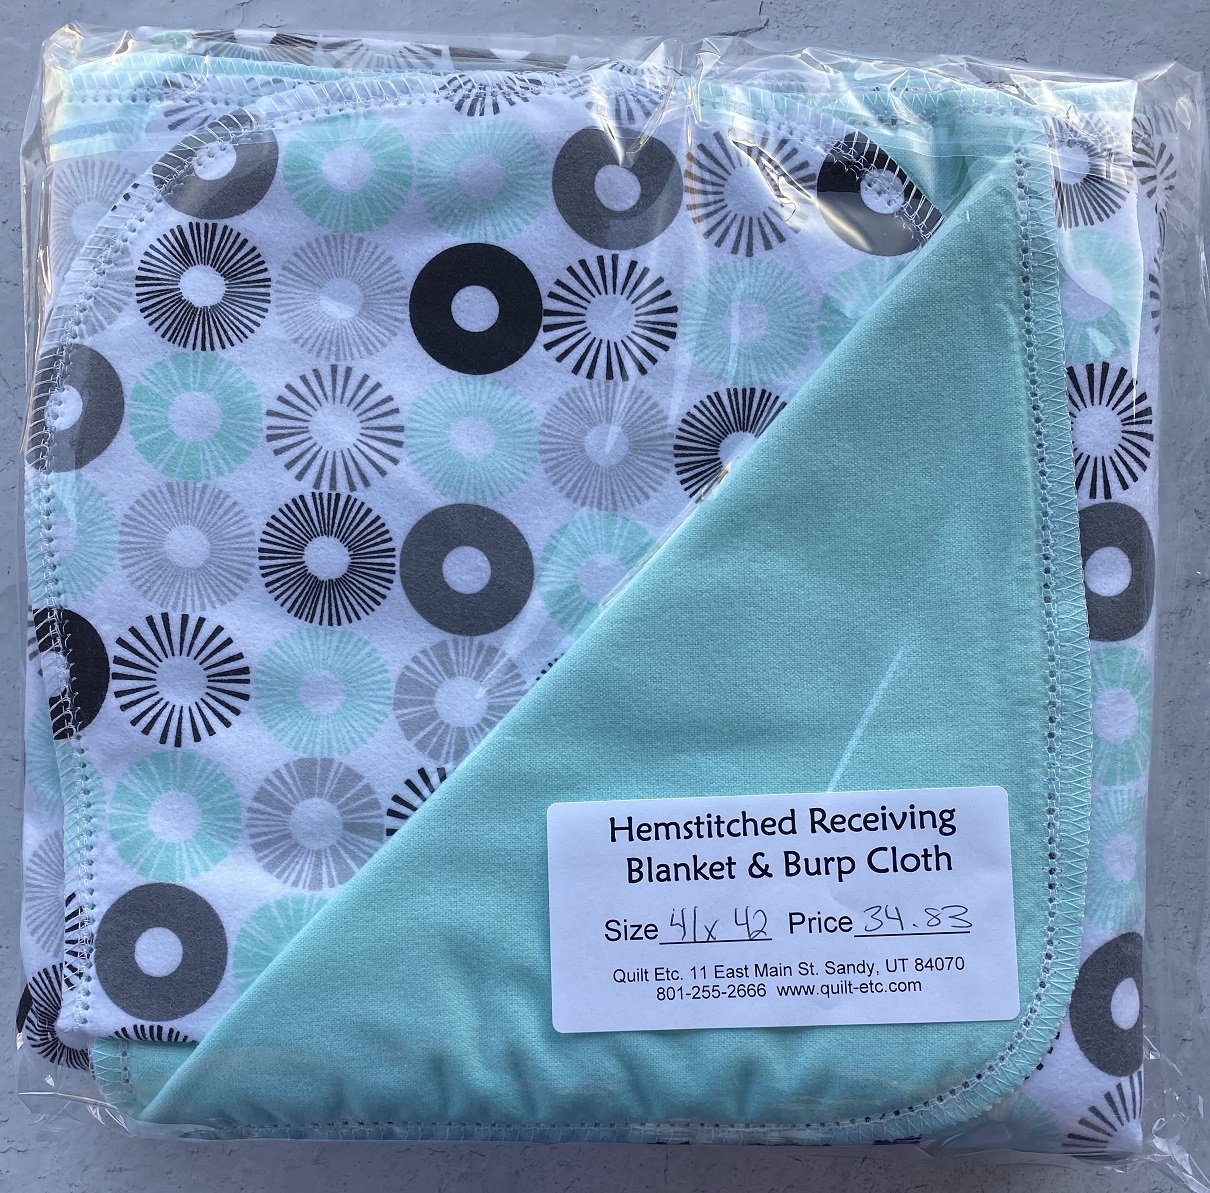 Hemstitched Receiving Blanket & Burp Cloth 29